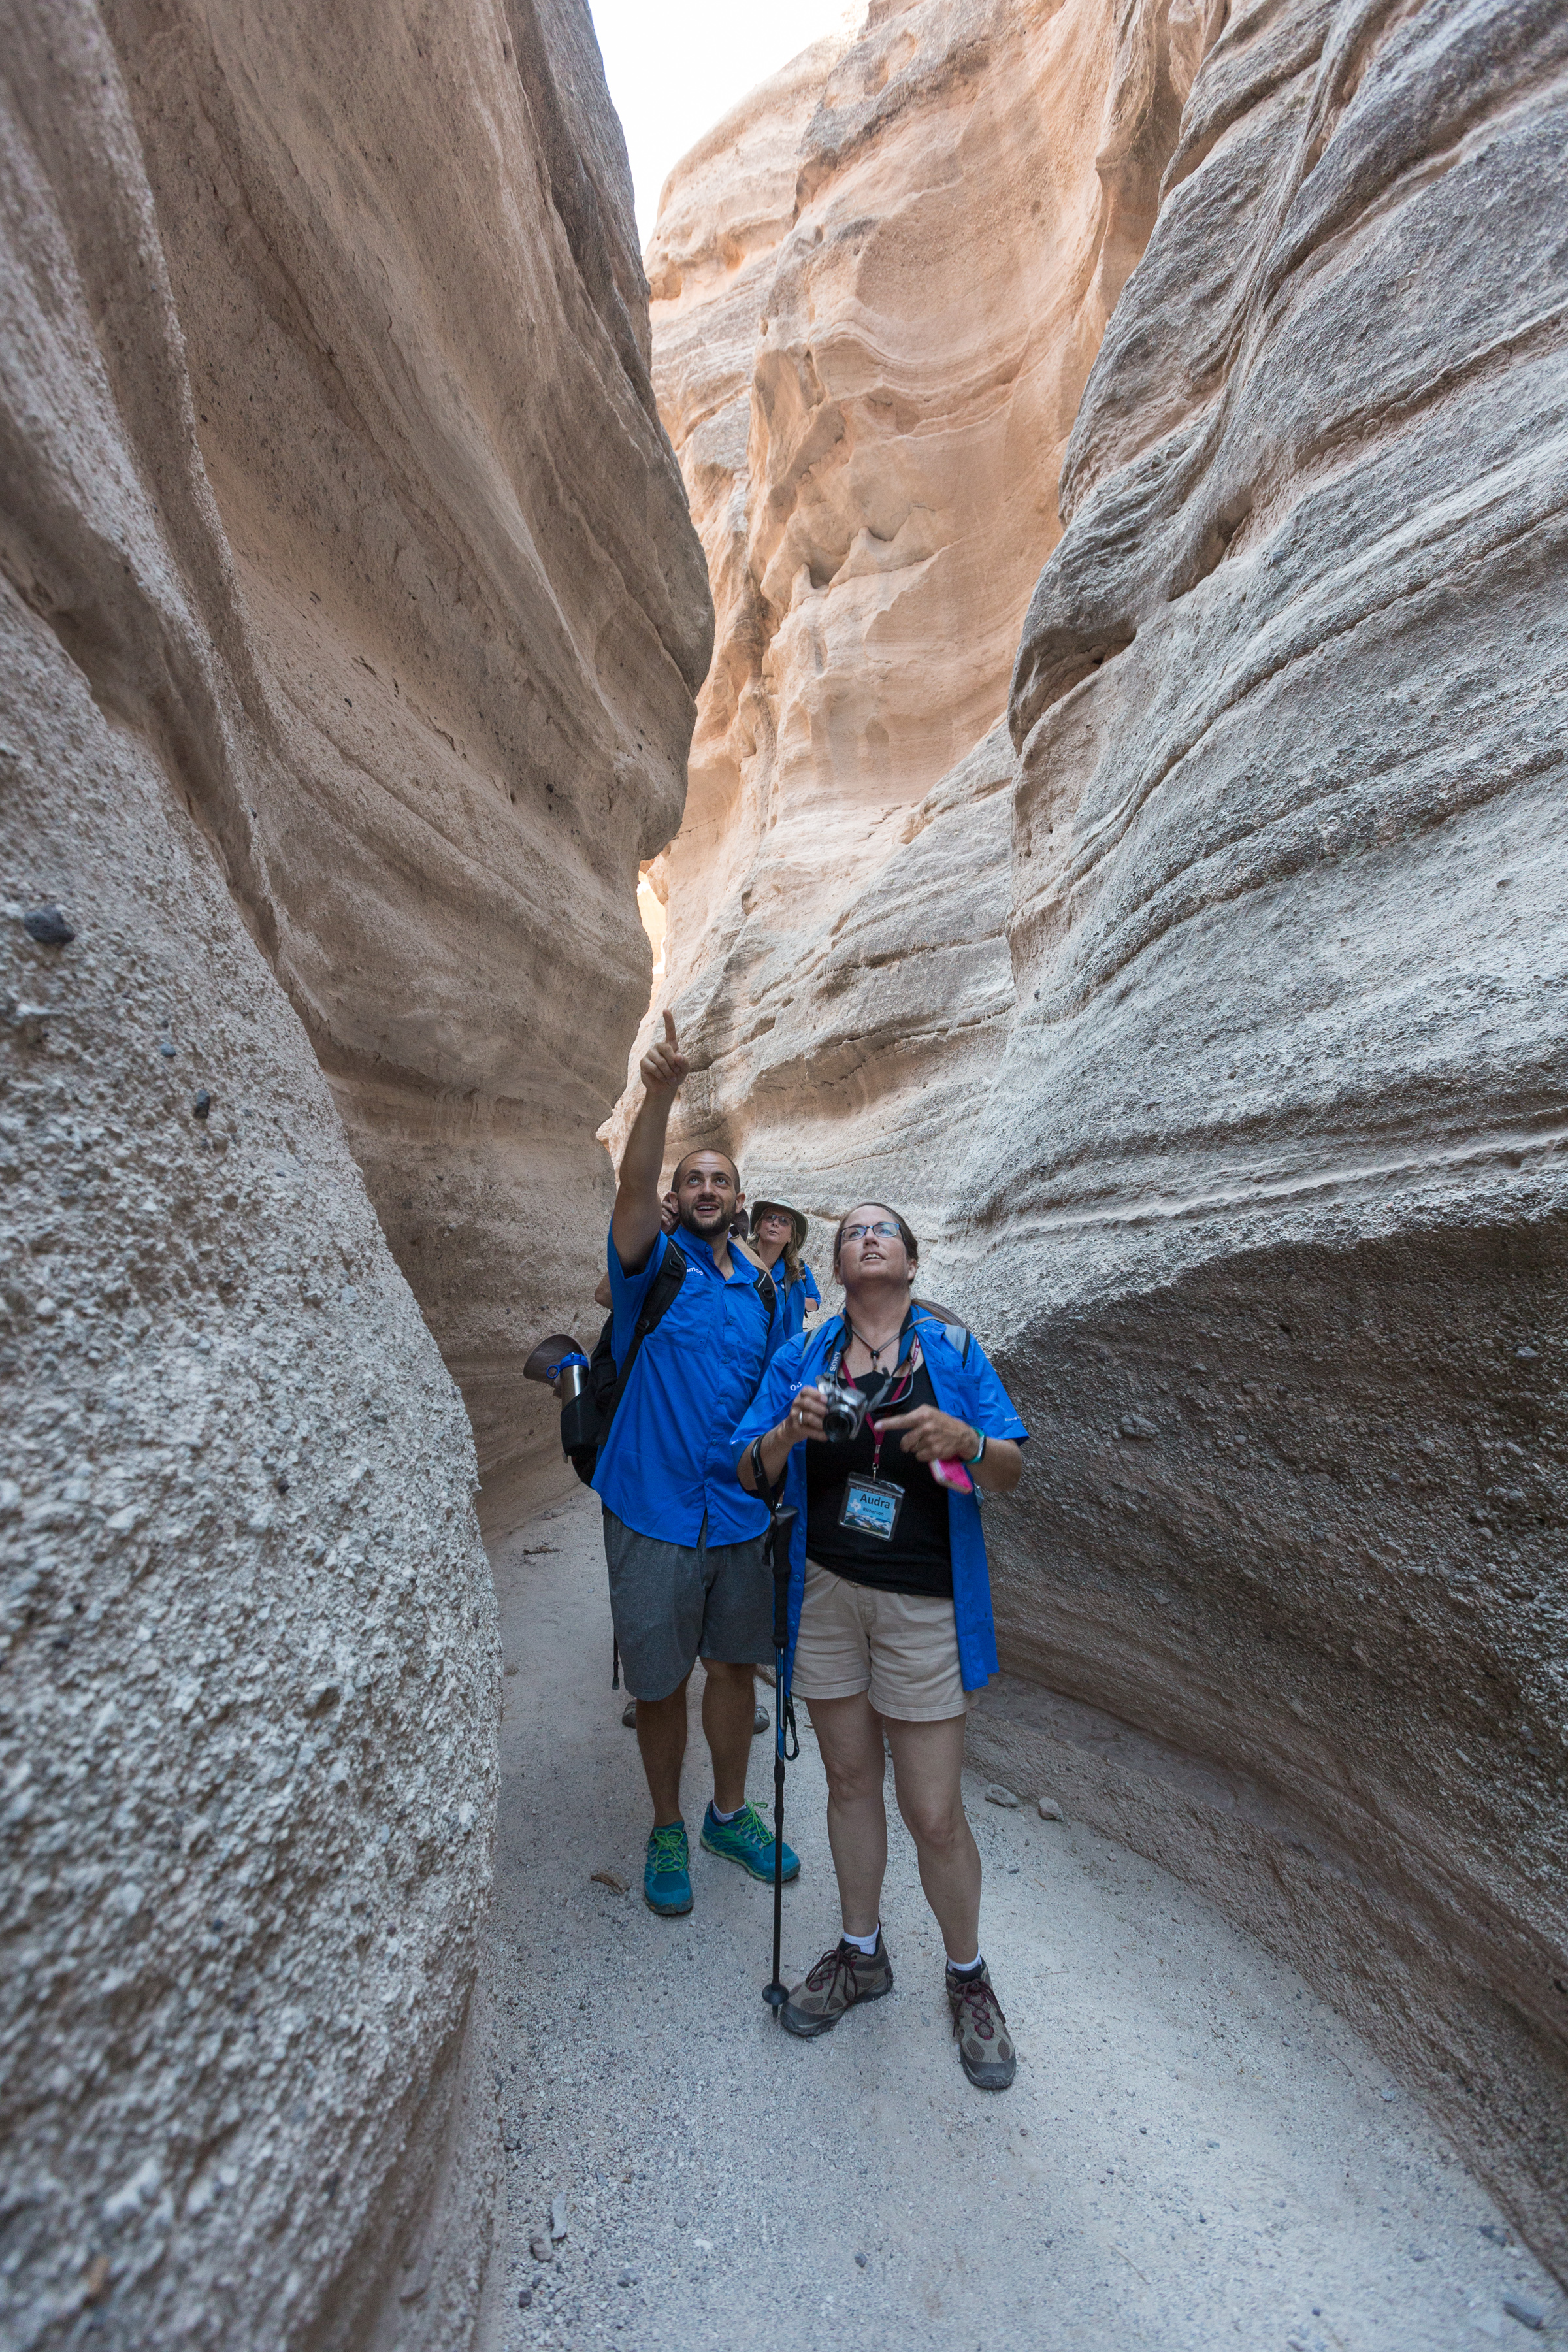 Two participants in the G-Camp explore a slot canyon in New Mexico's Kasha-Katuwe Tent Rocks National Monument. (Source: Aramco Services Co.)